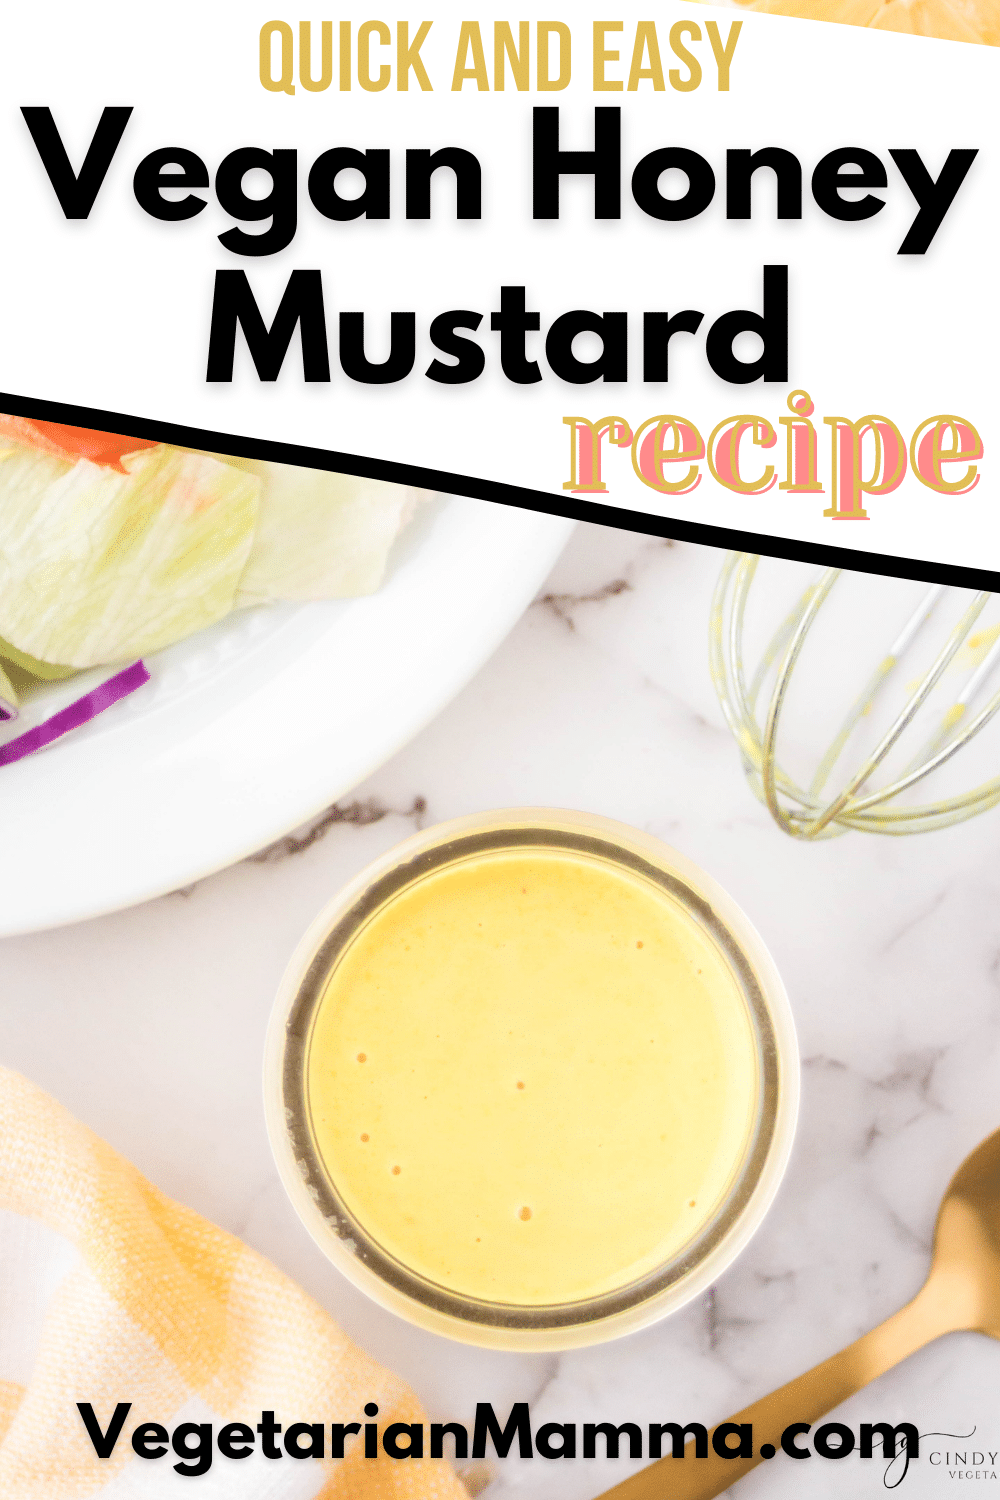 Vegan honey mustard sauce is the delicious dip that goes with anything! Enjoy dipping your favorite foods into this sweet and tangy sauce. #vegan #honeymustard